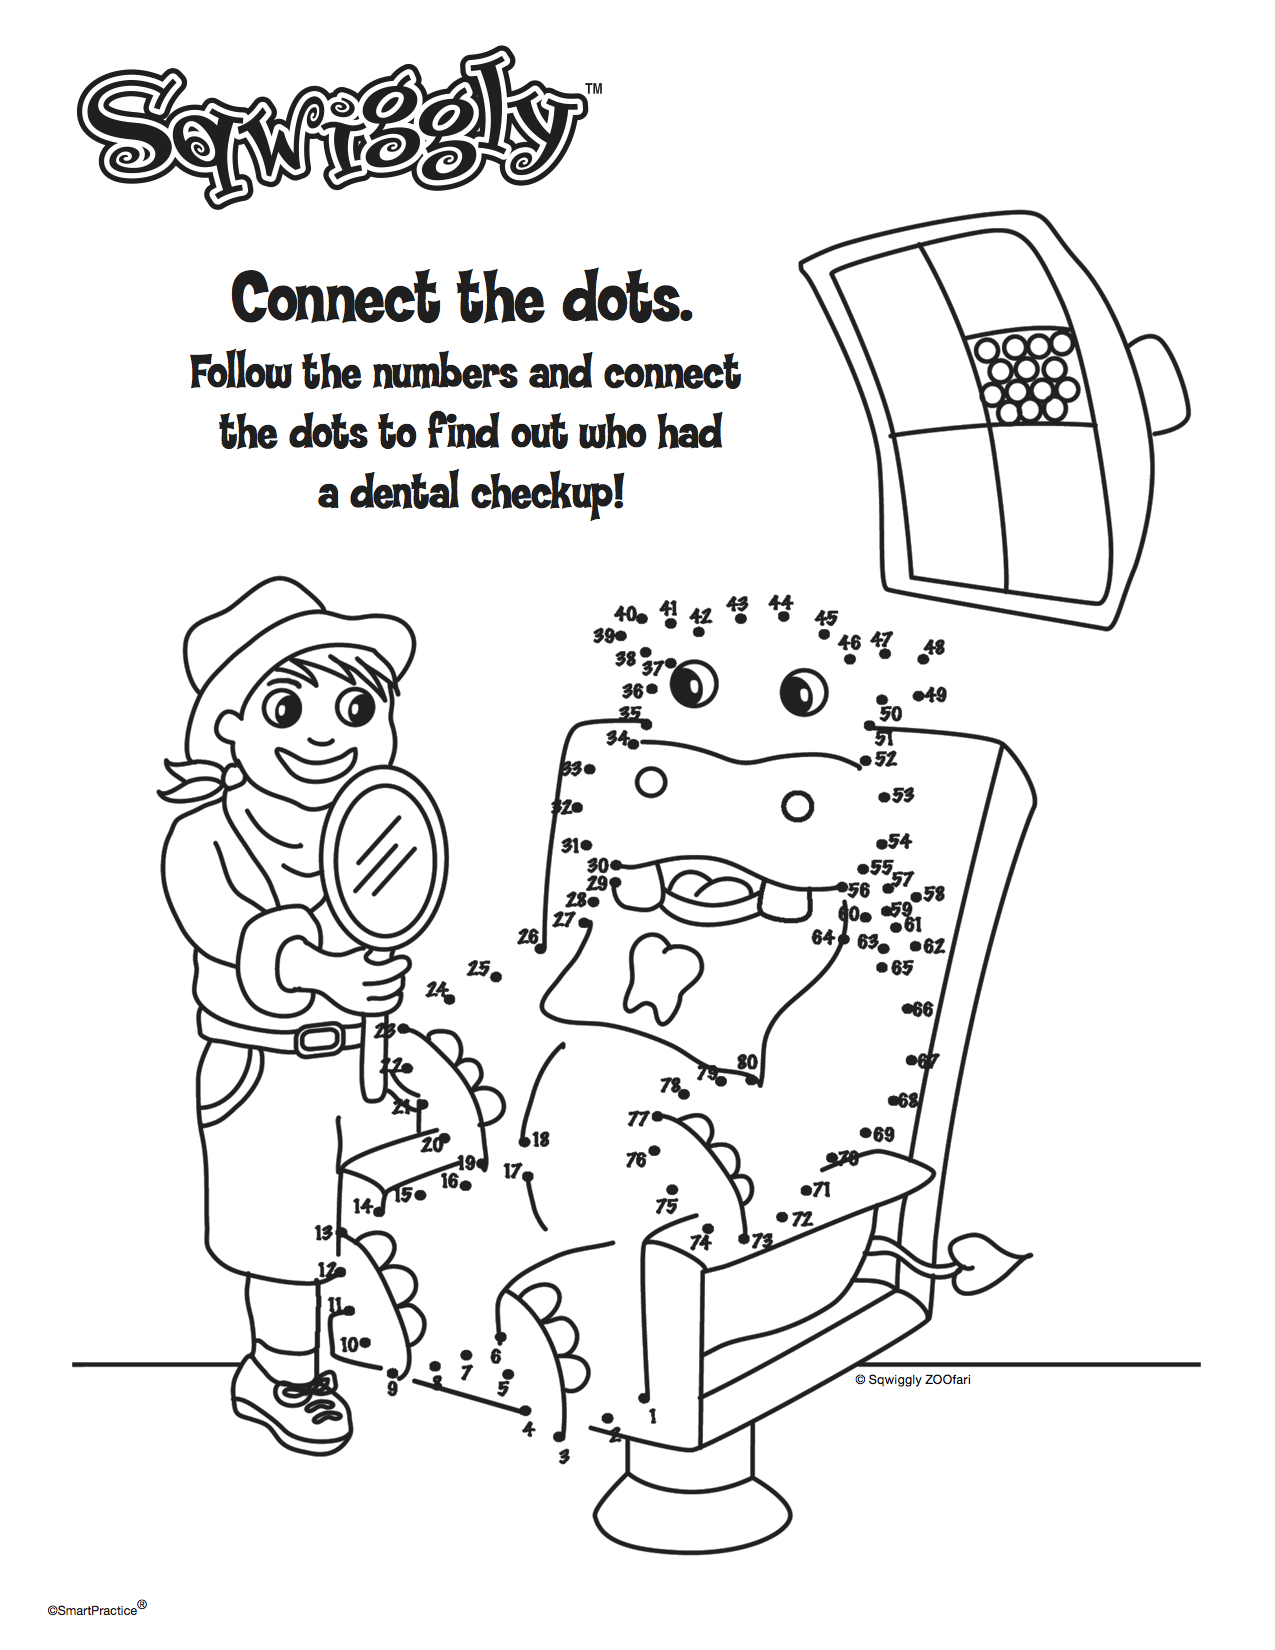 A dot connecting drawing for kids.